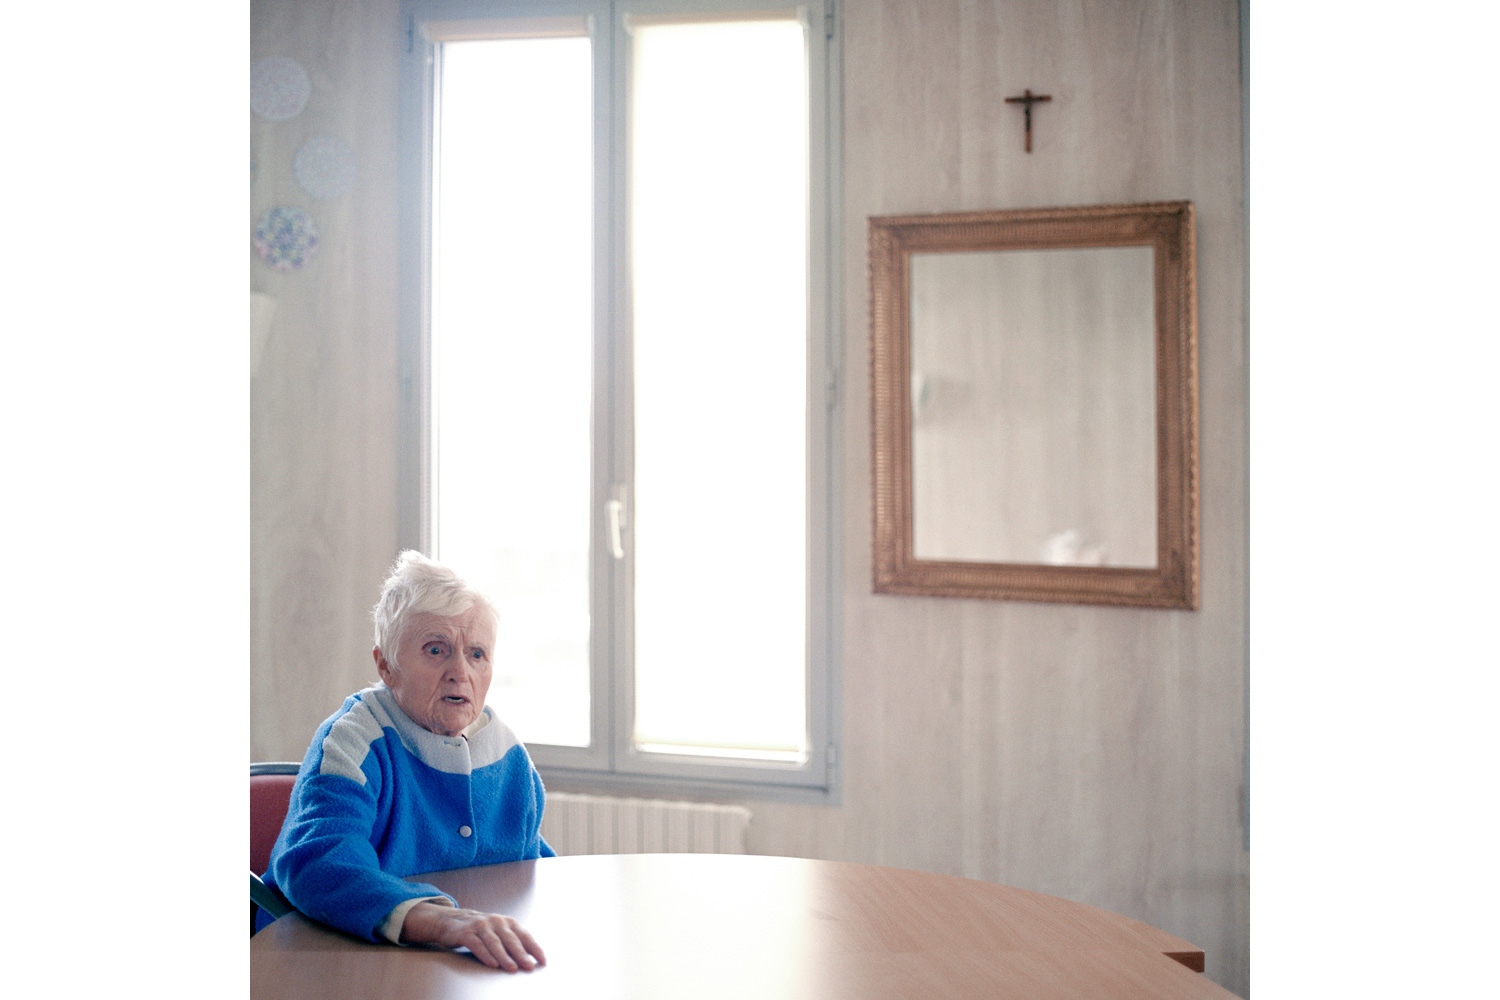 A resident sits in the ward's common room. She is talking aloud to someone the photographer cannot see. The age-related disease is a mystery as very little is known about its causes. There is no cure for Alzheimer's disease although medication has been proved to slow down the developing process of the symptoms